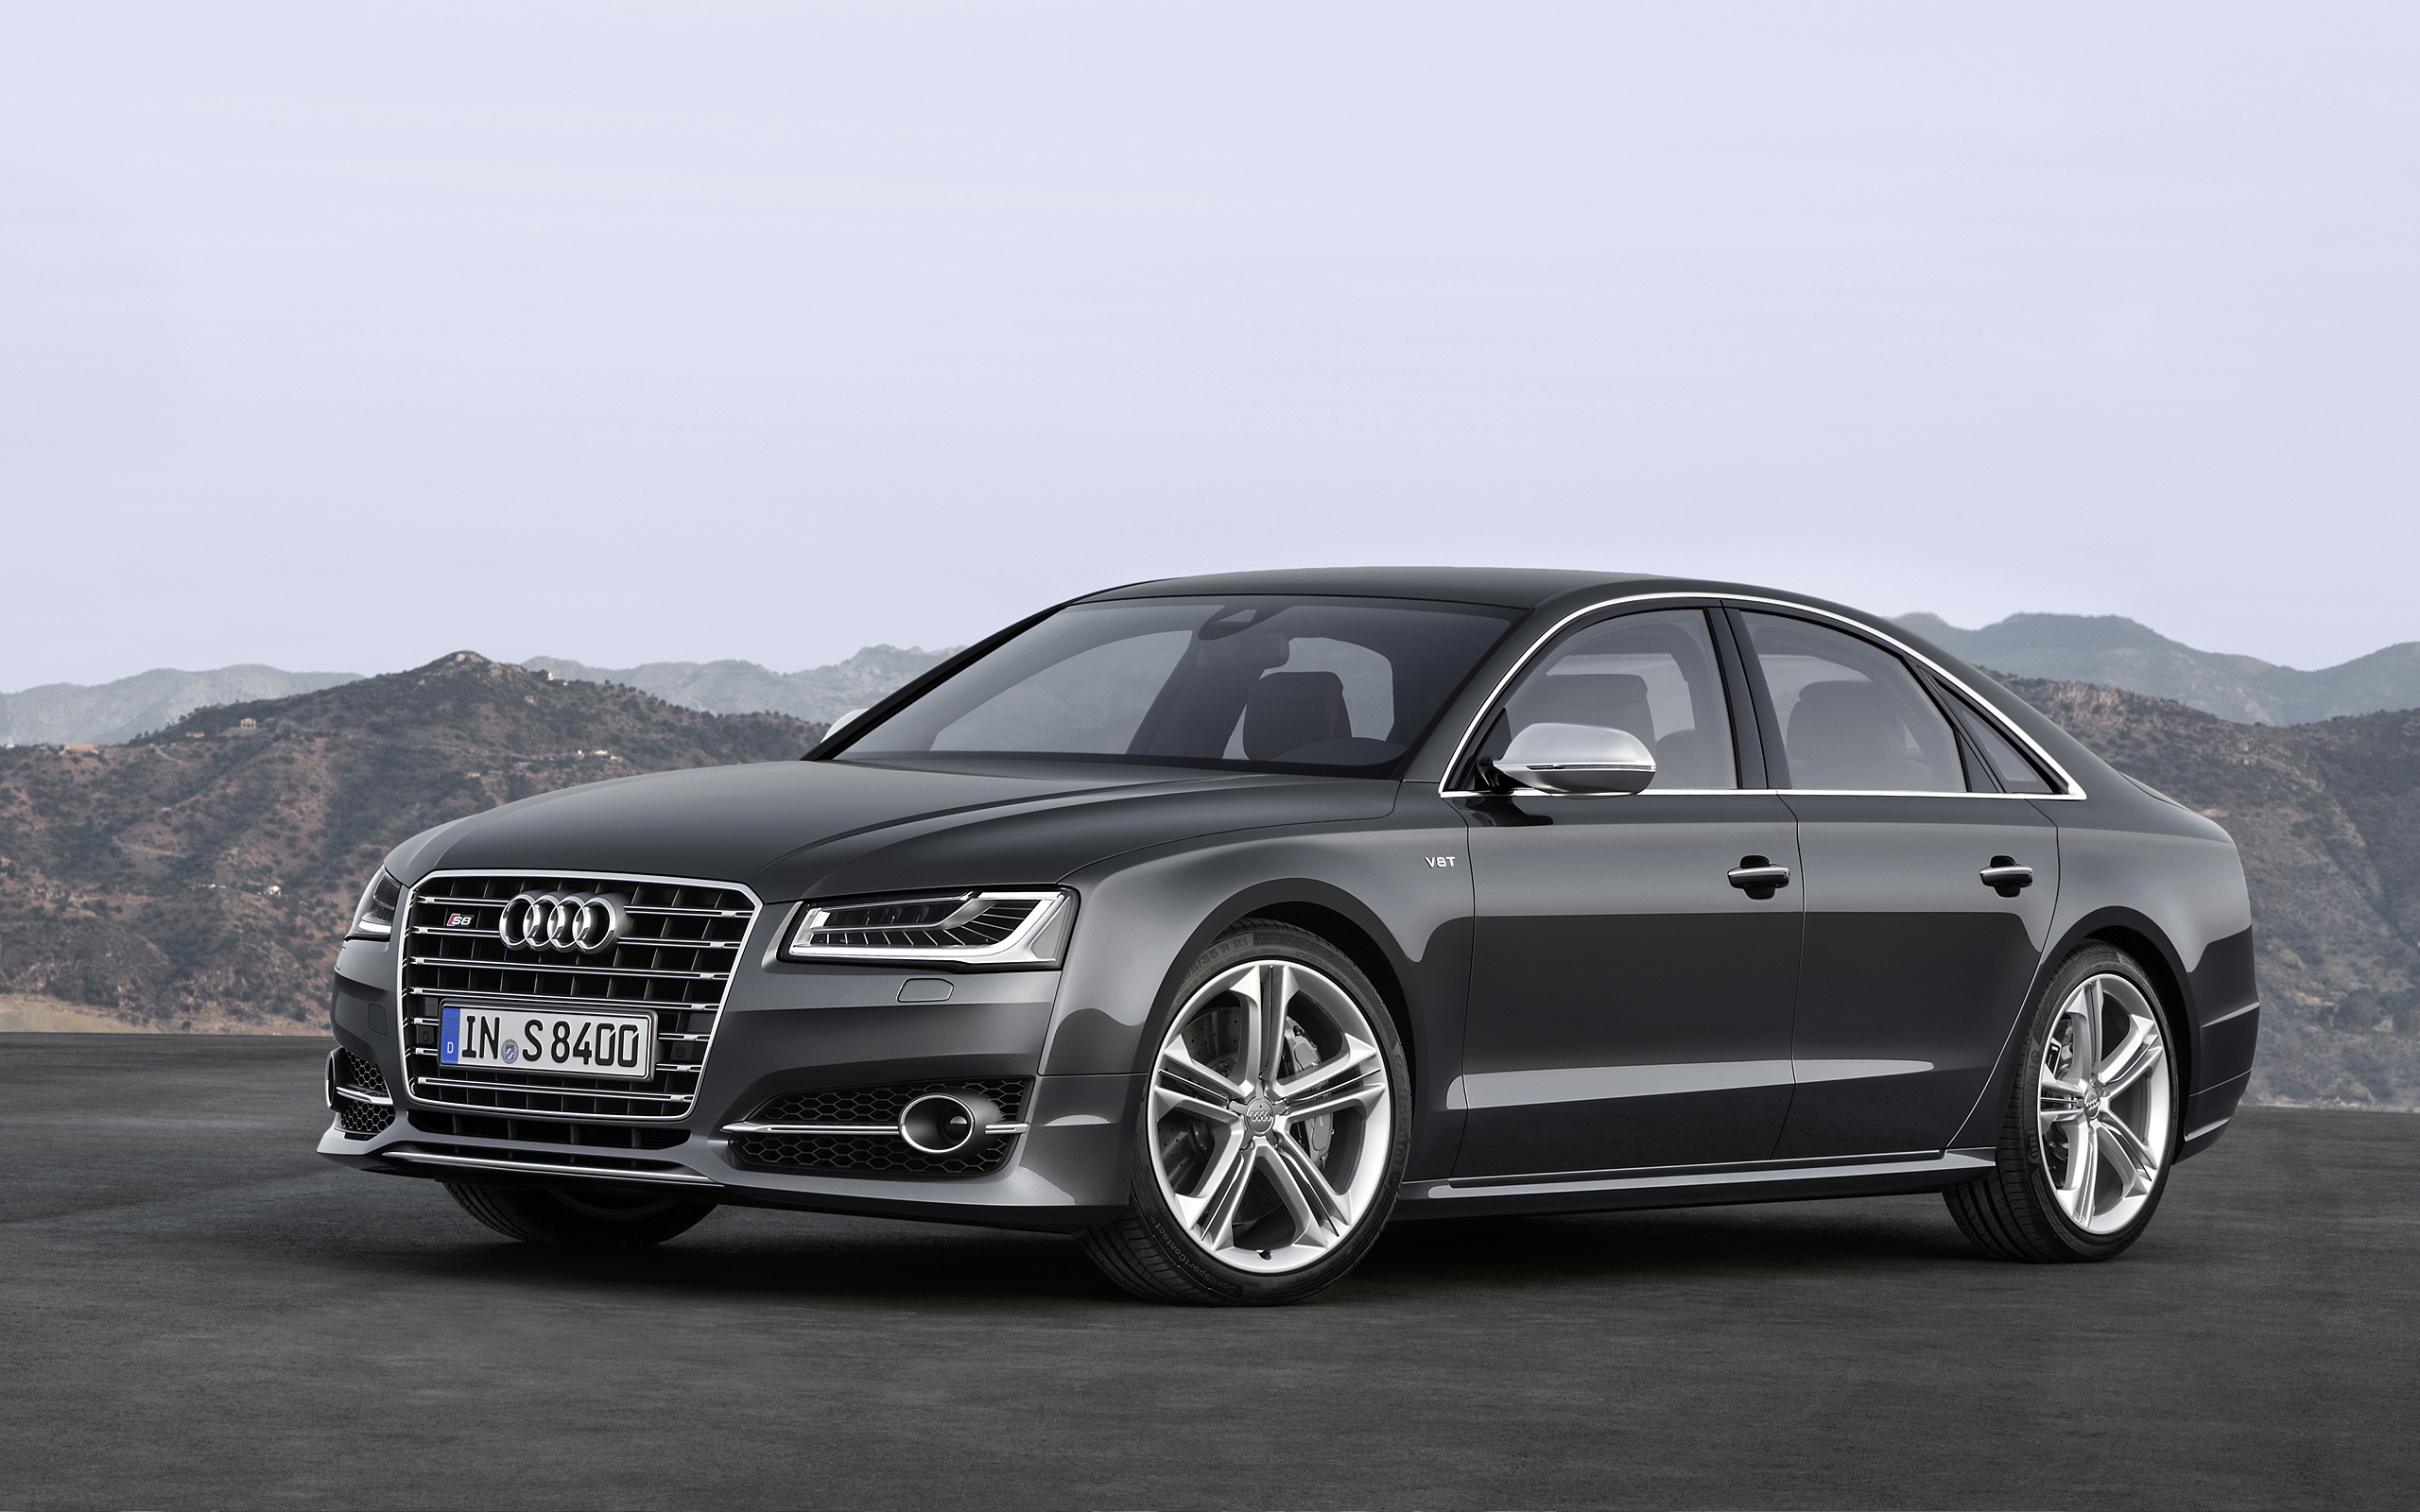 75 Audi A8 HD Wallpapers Background Images 2560x1600